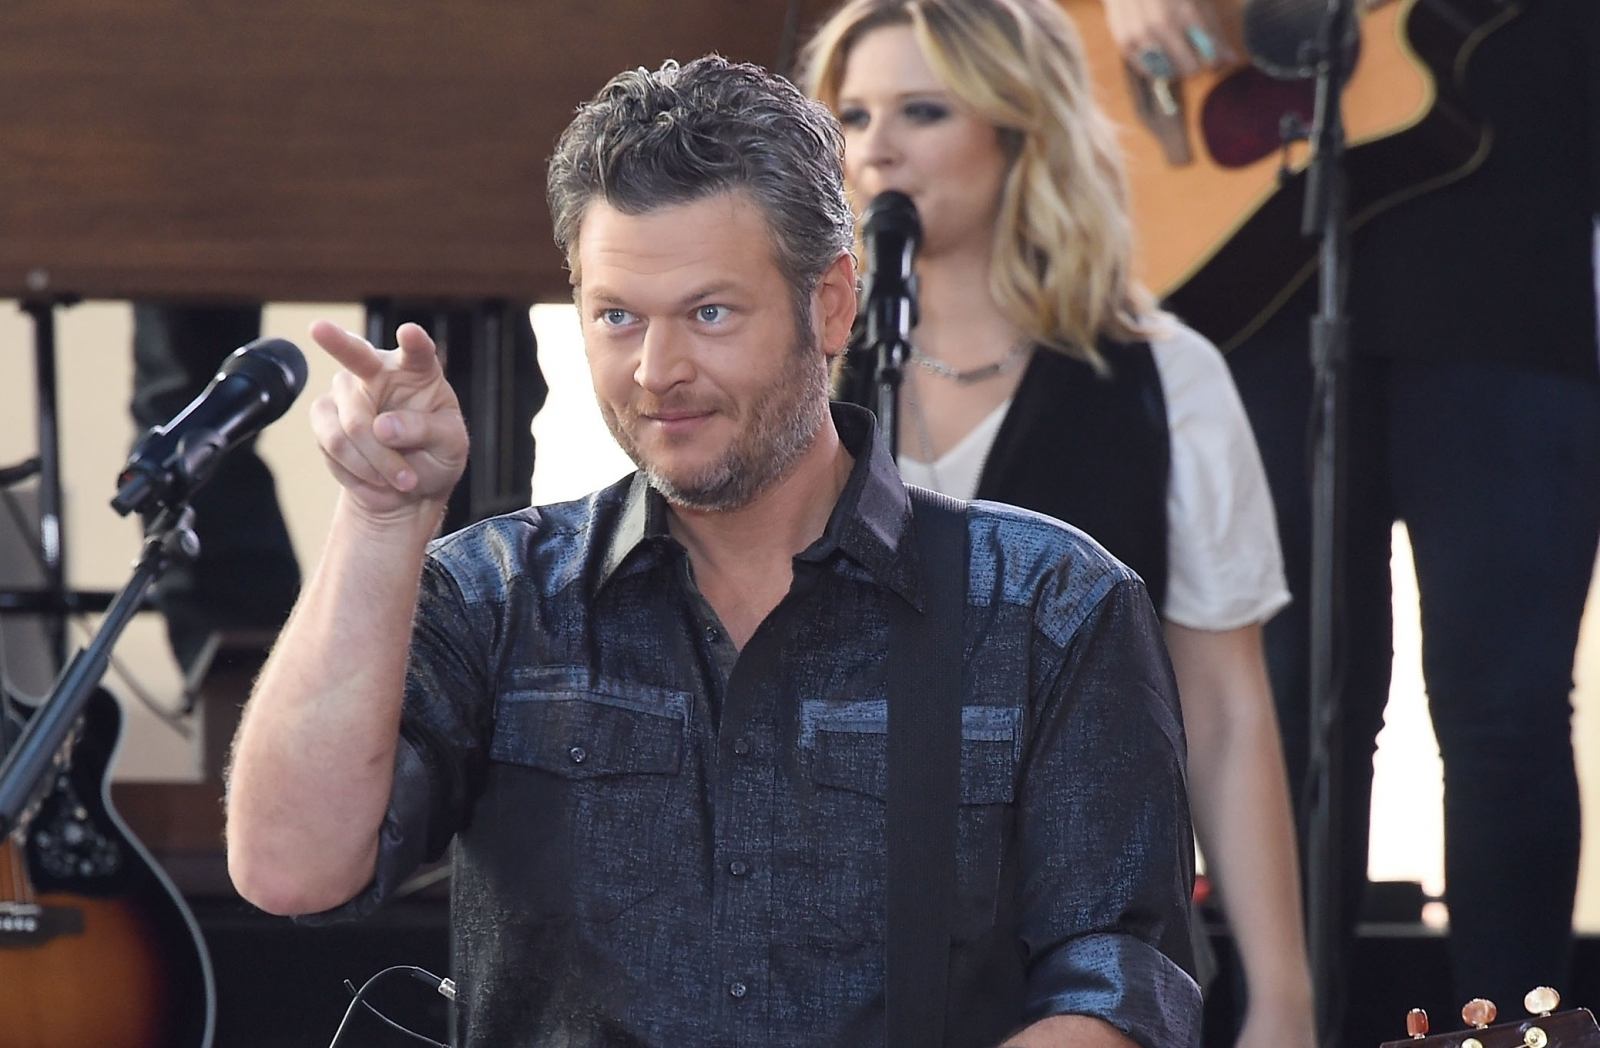 Twitter hilariously roasts the 'Sexiest Man Alive' Blake Shelton